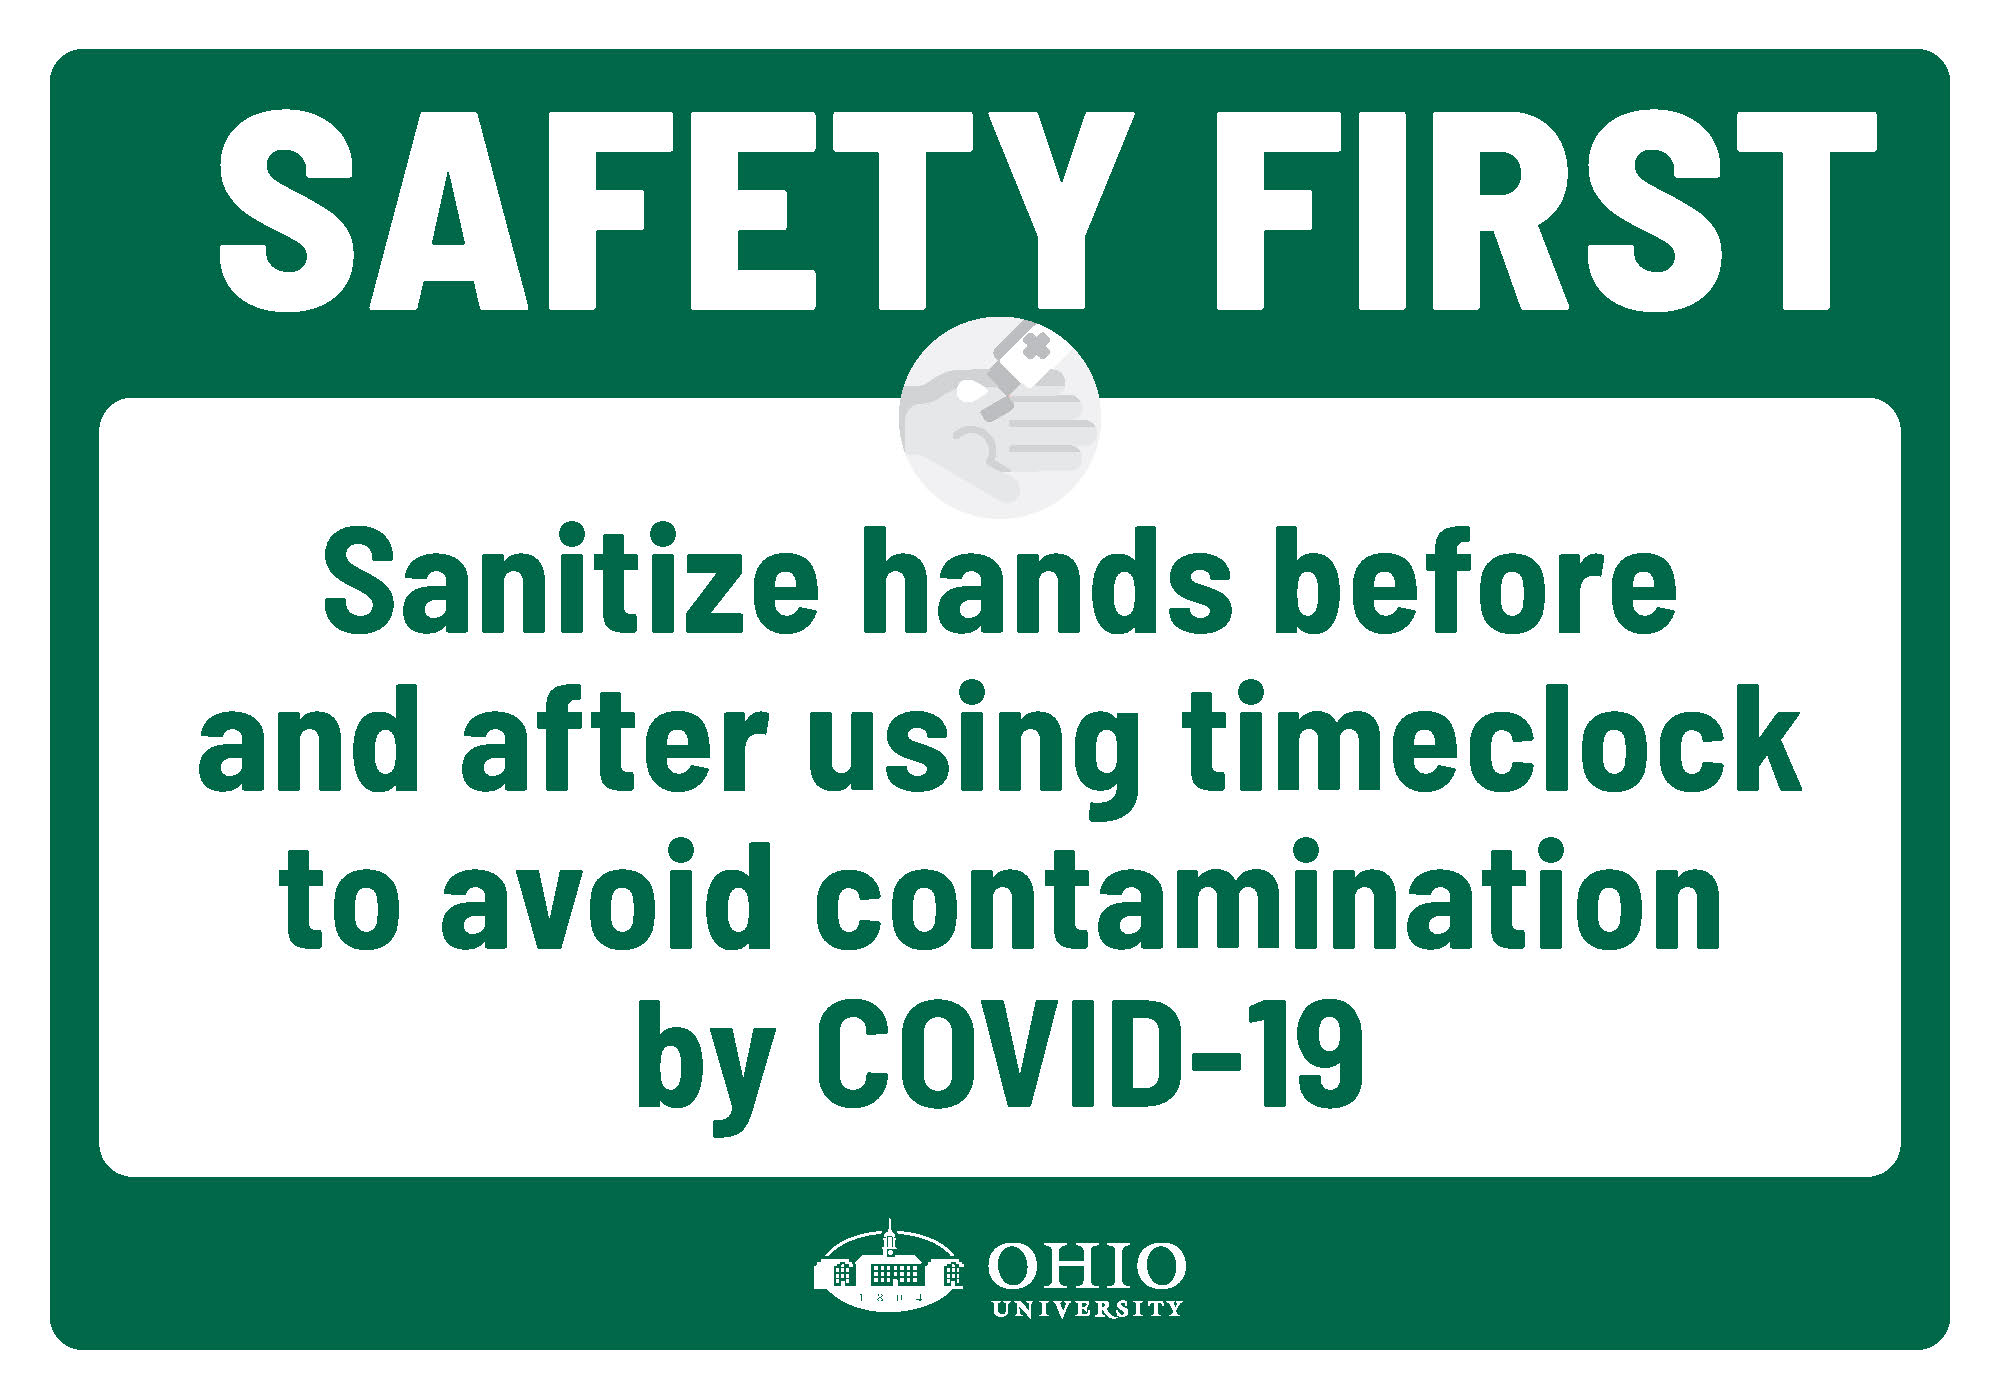 Sign that says: Safety first. Sanitize hands before and after using timeclock to avoid contamination by COVID-19